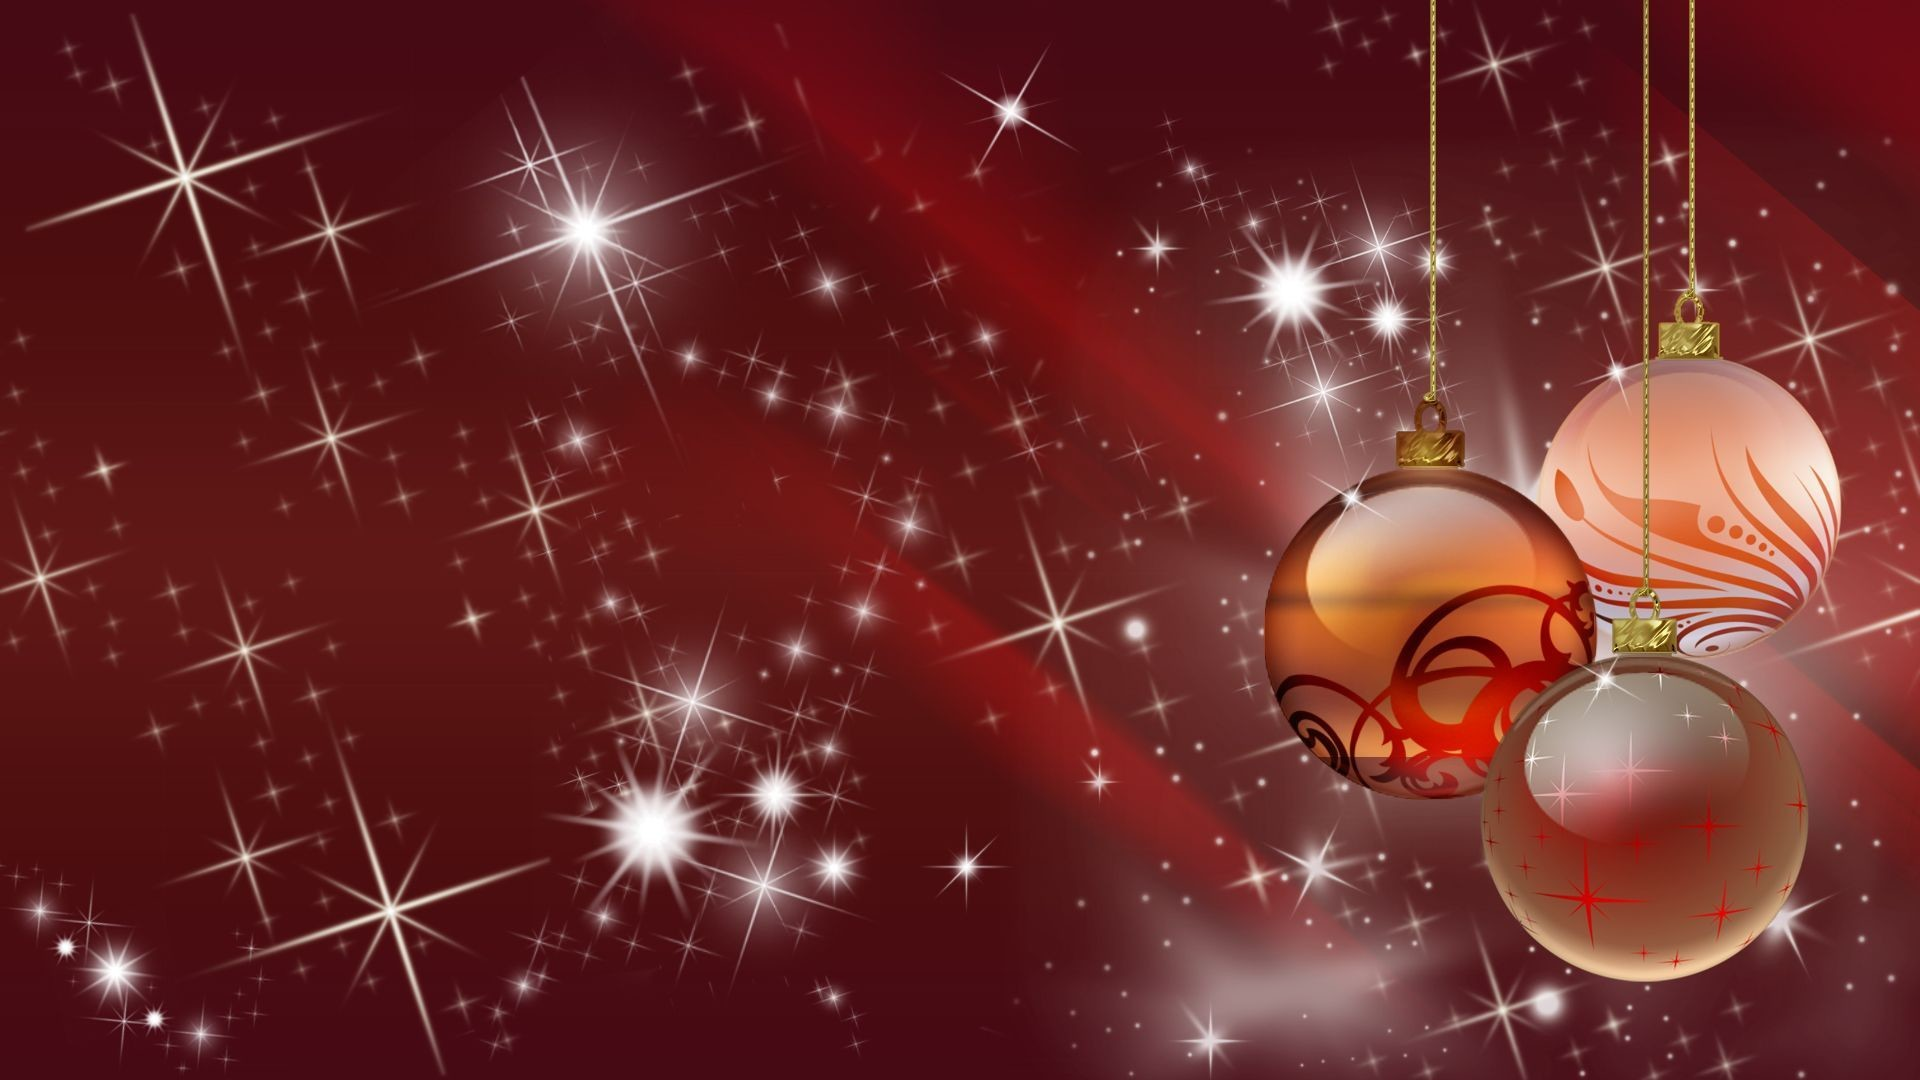 182 1821857 1920x1080 free christmas wallpaper backgrounds background christmas wallpaper